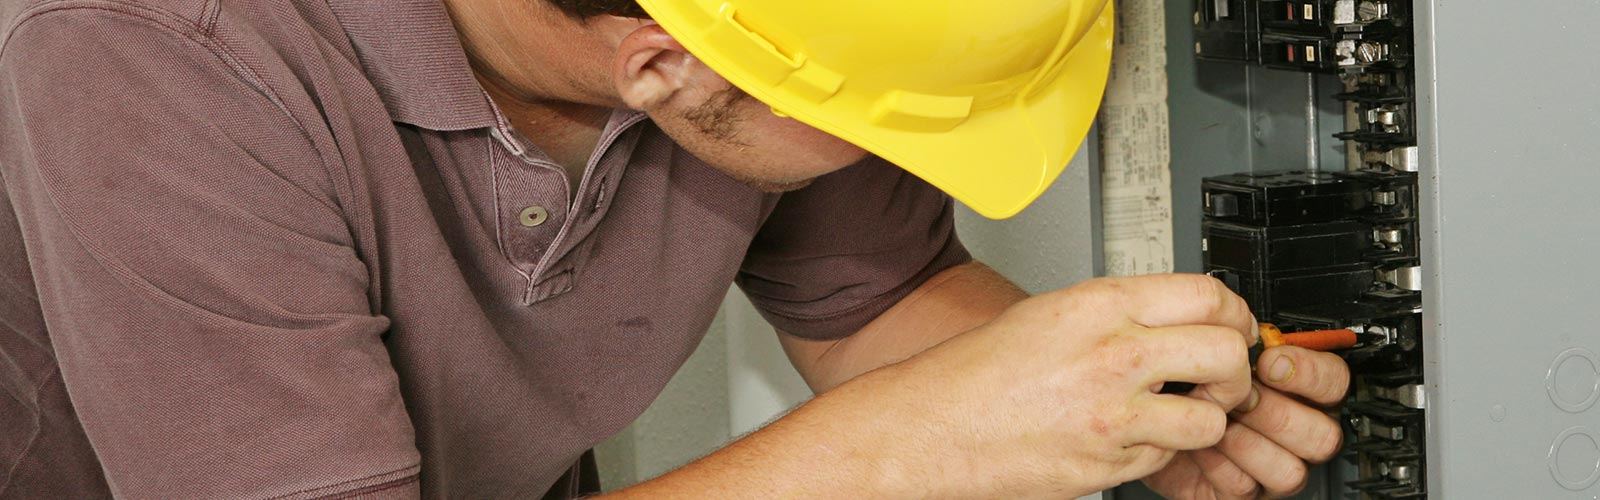 Electrical Repairs in South Florida